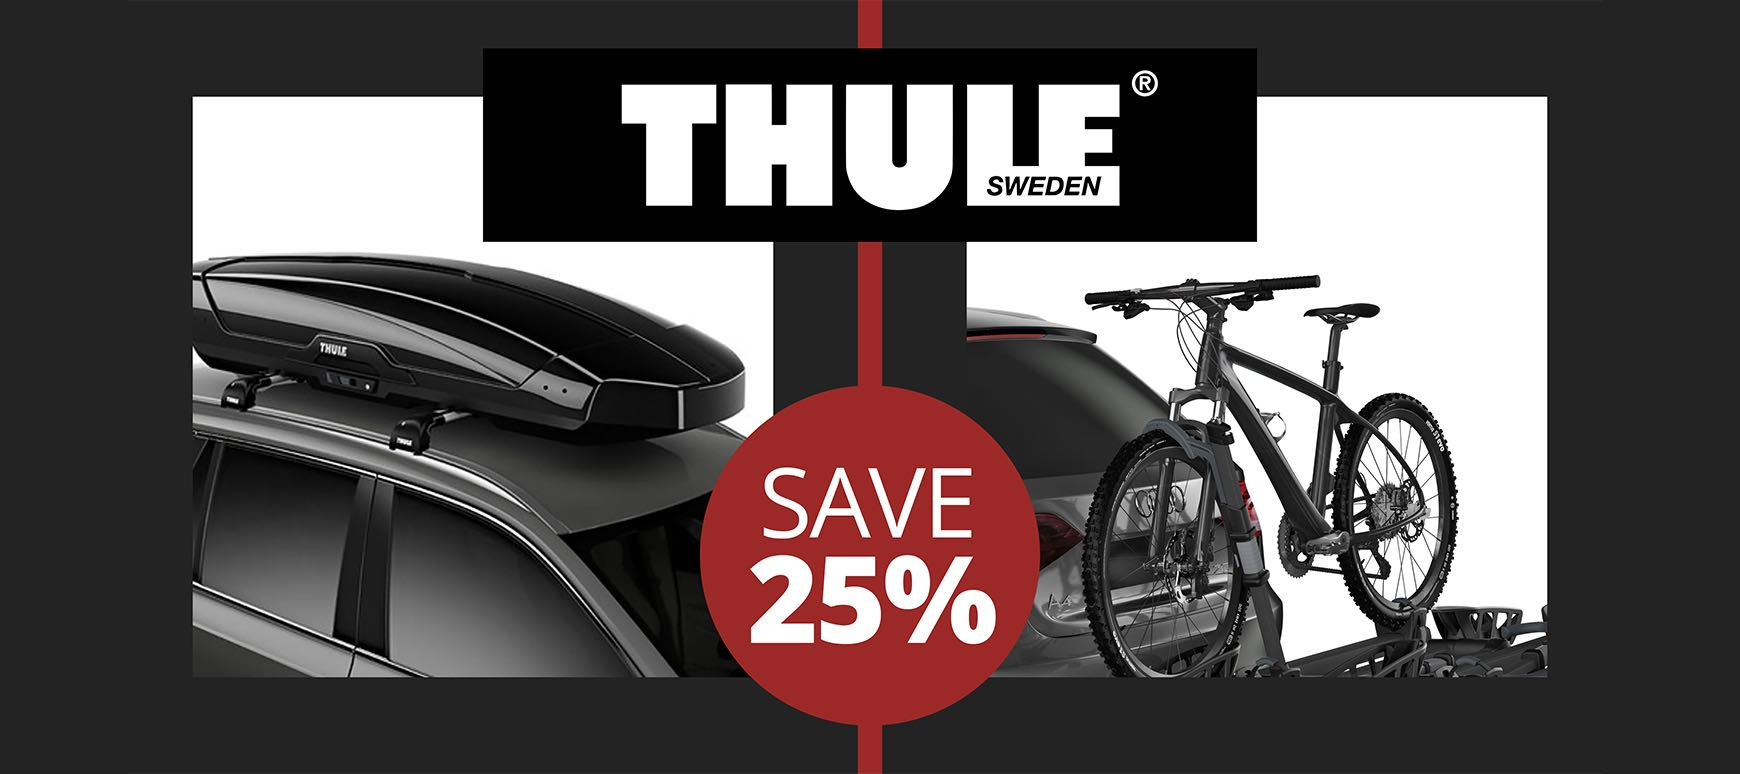 THULE Save 25%